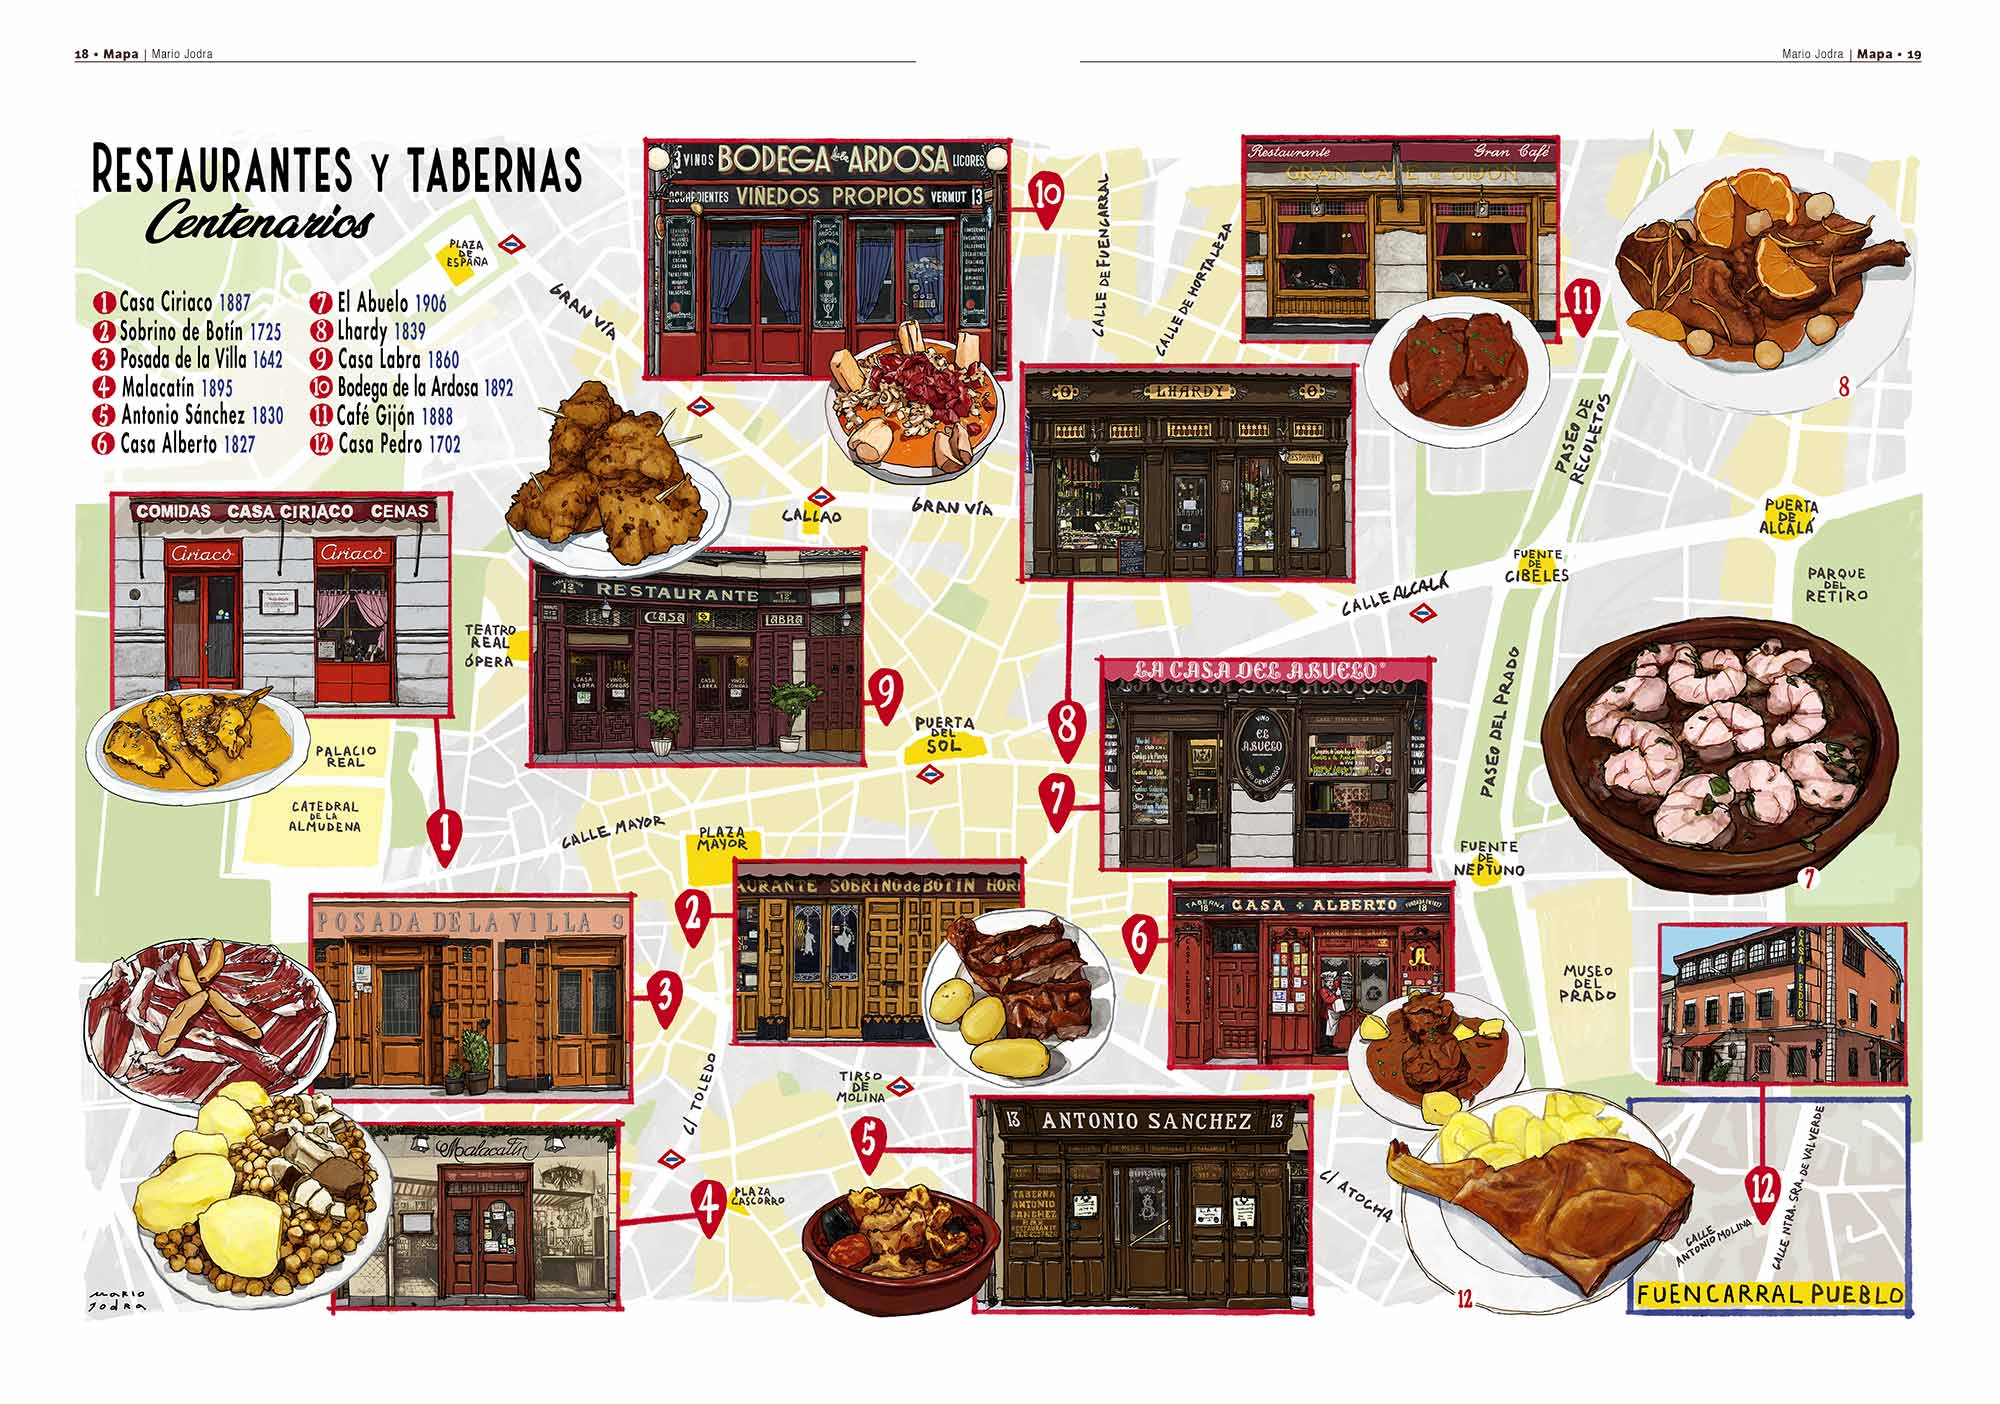 Mario Jodra illustration Art - Map for eme21, an illustrated cultural magazine. The map was used for a campaign of tourist and gastronomic guides of the Madrid City Council